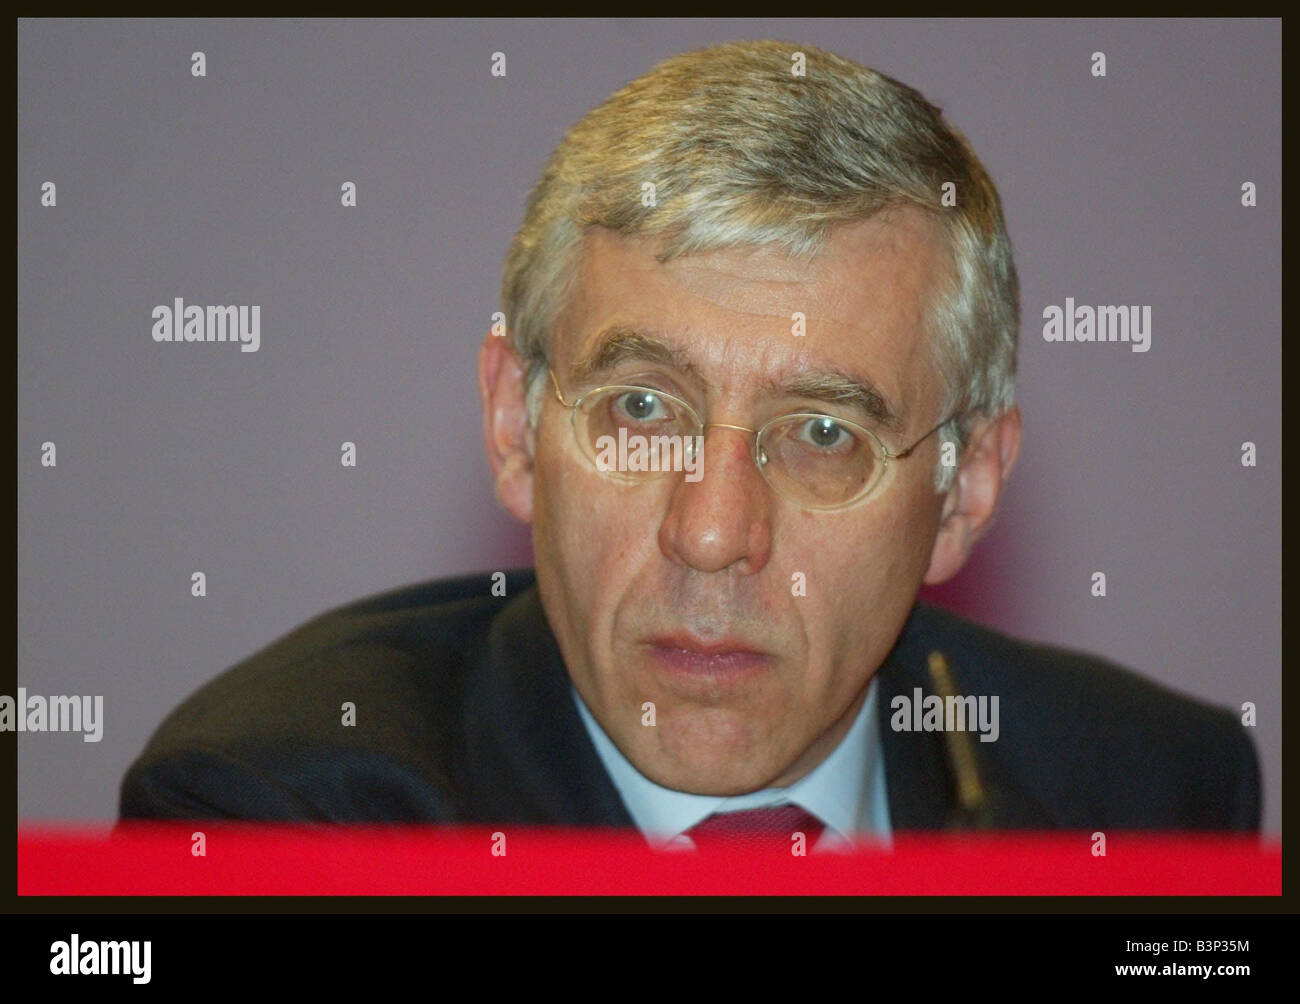 Jack Straw at the Labour Party Conference in Bournemouth October 2003 - Stock Image